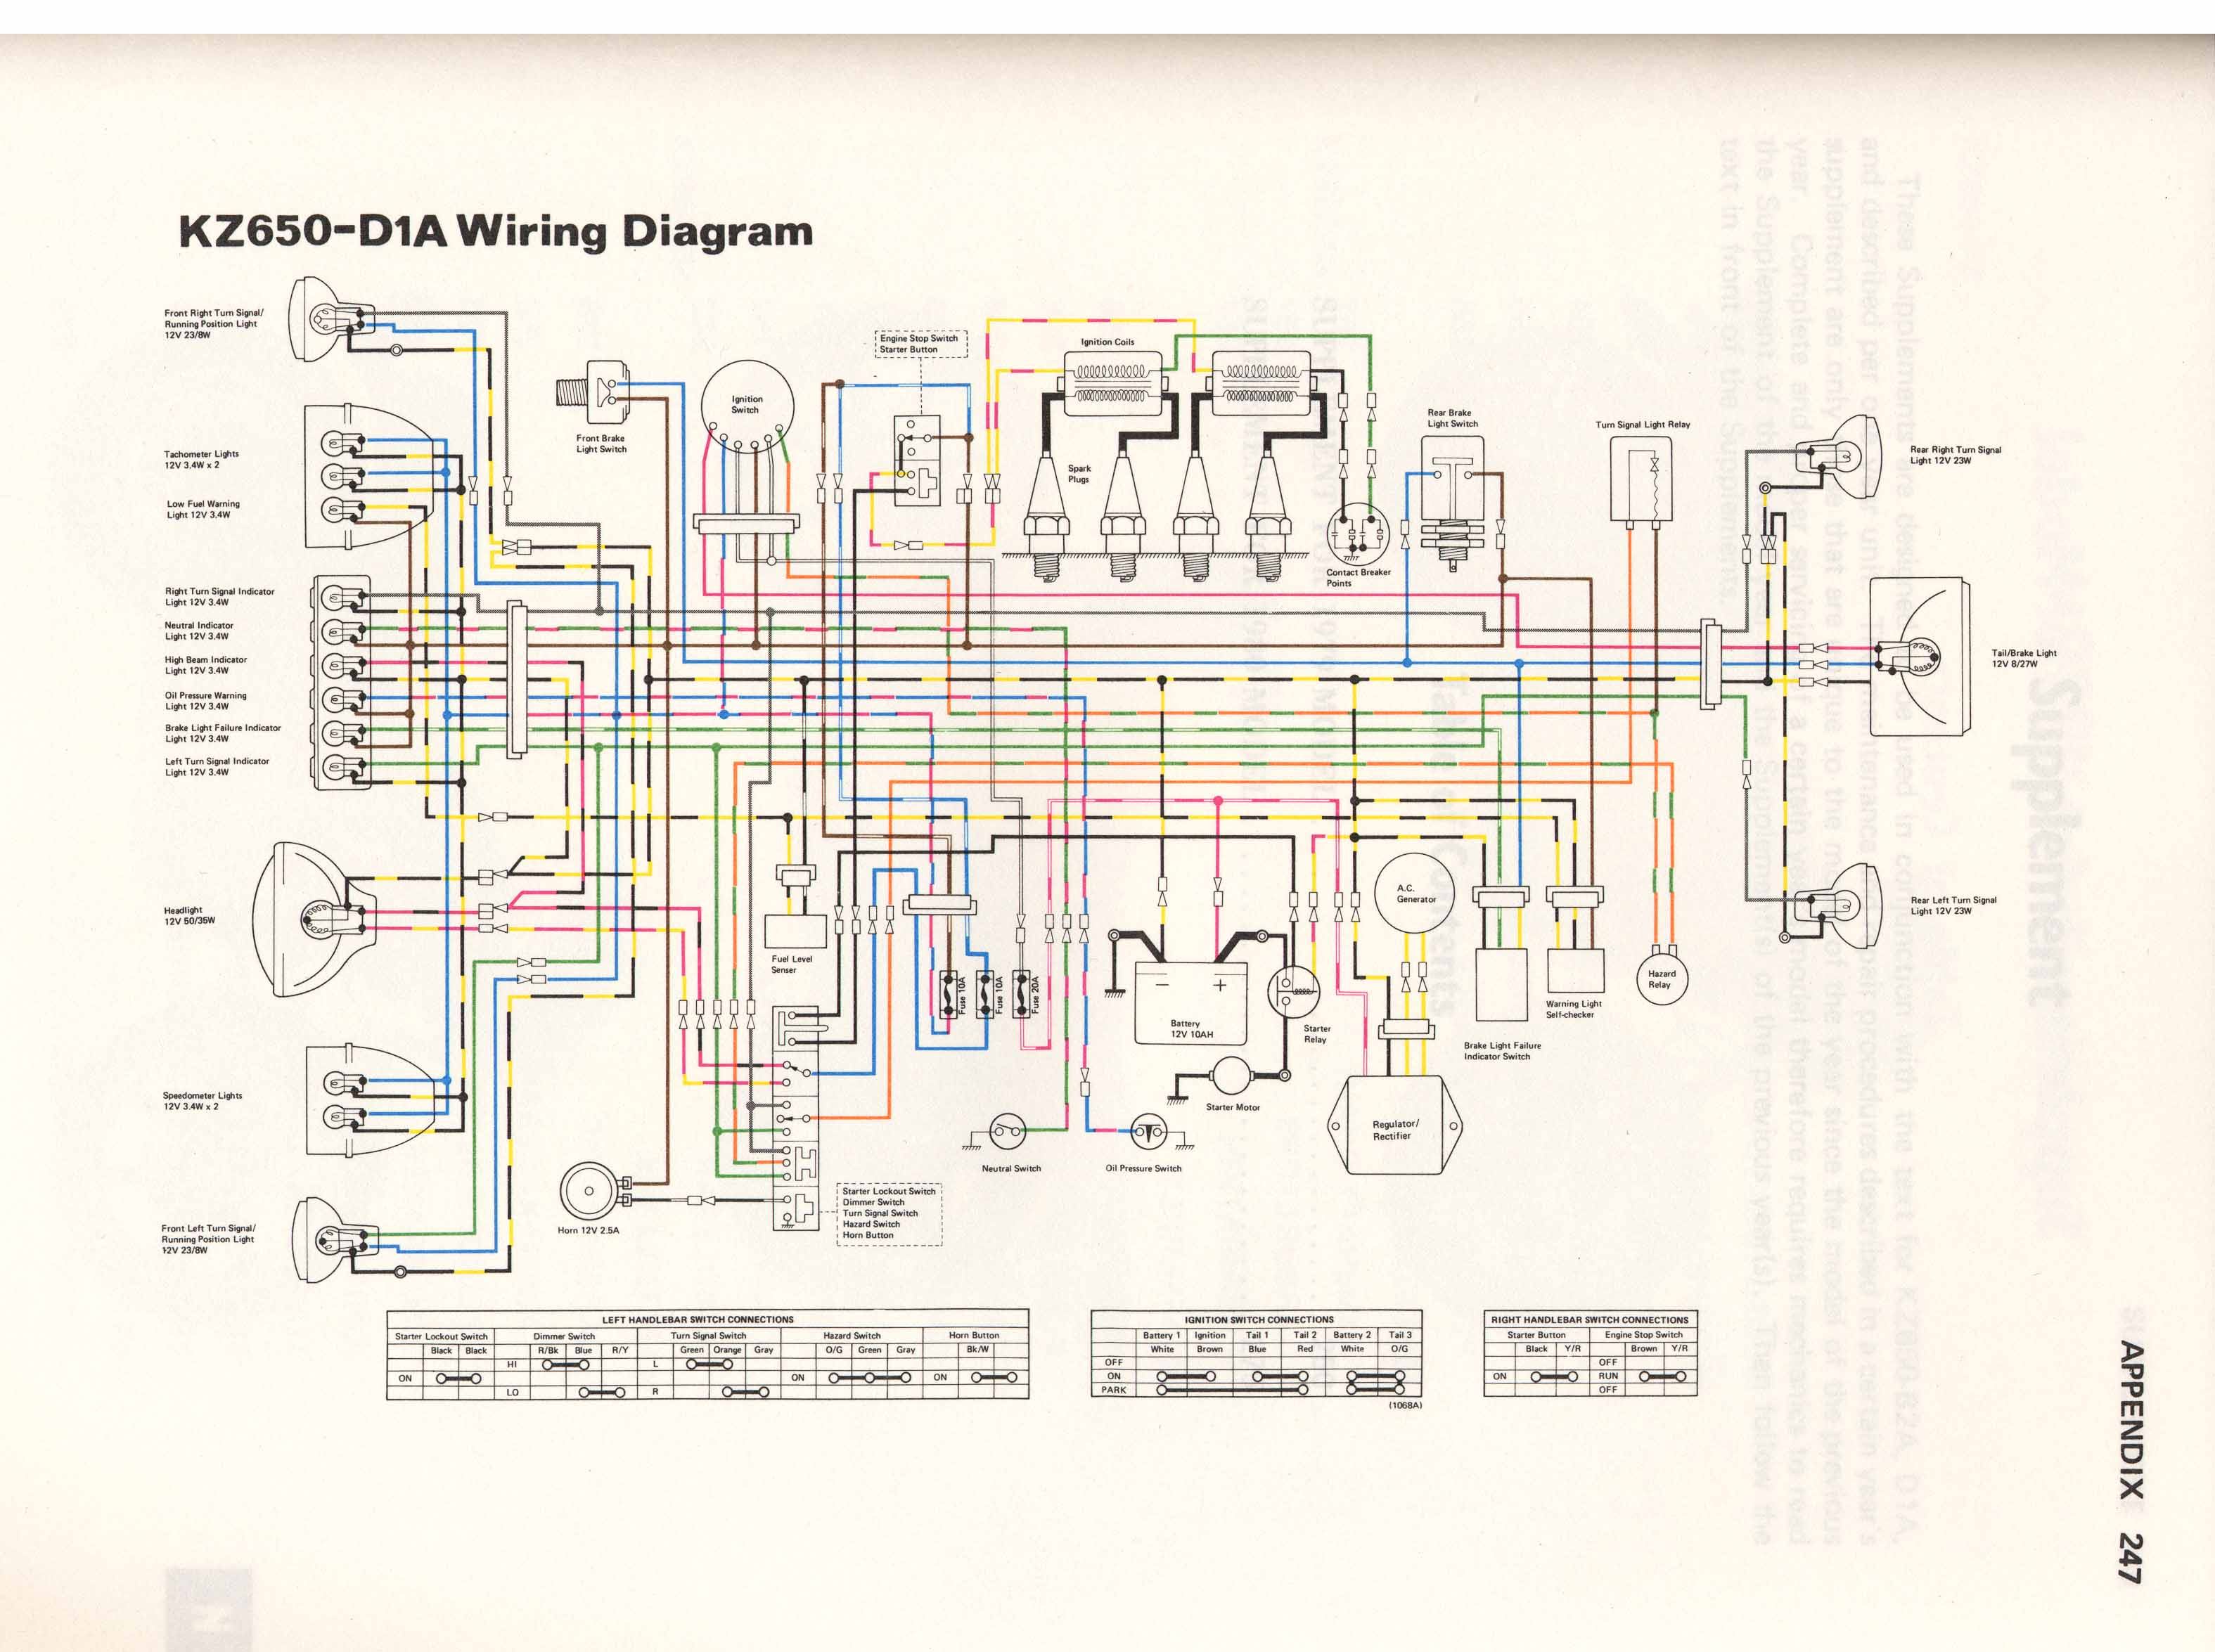 Zx9r B Wiring Diagram Detailed Schematics Rj45 Connector Kz650 Info Diagrams